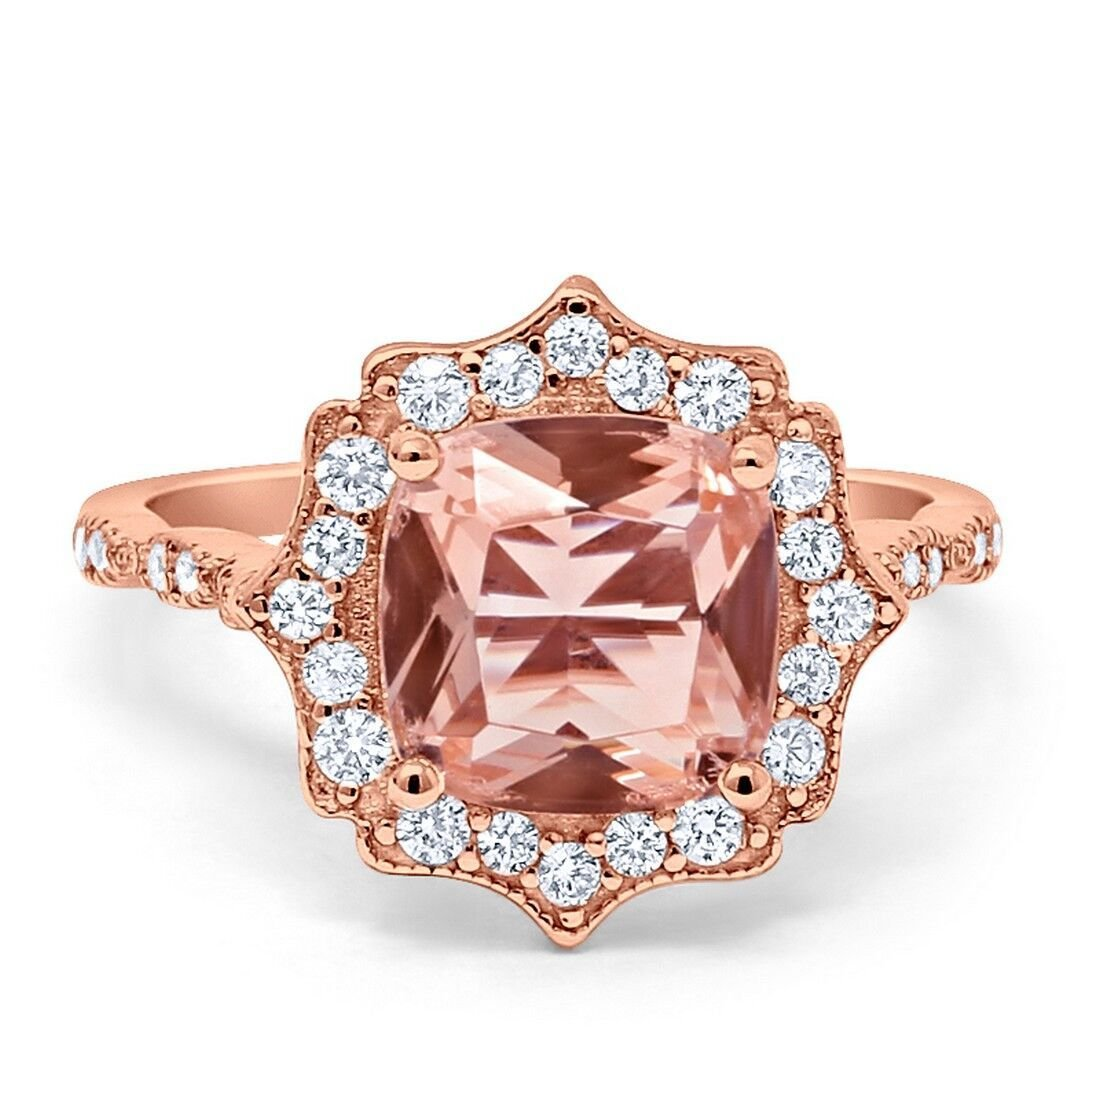 Blue Apple Co. Halo Art Deco Engagement Ring Cushion Simulated Morganite Round Cubic Zirconia Rose Tone 925 Sterling Silver, Size - 7